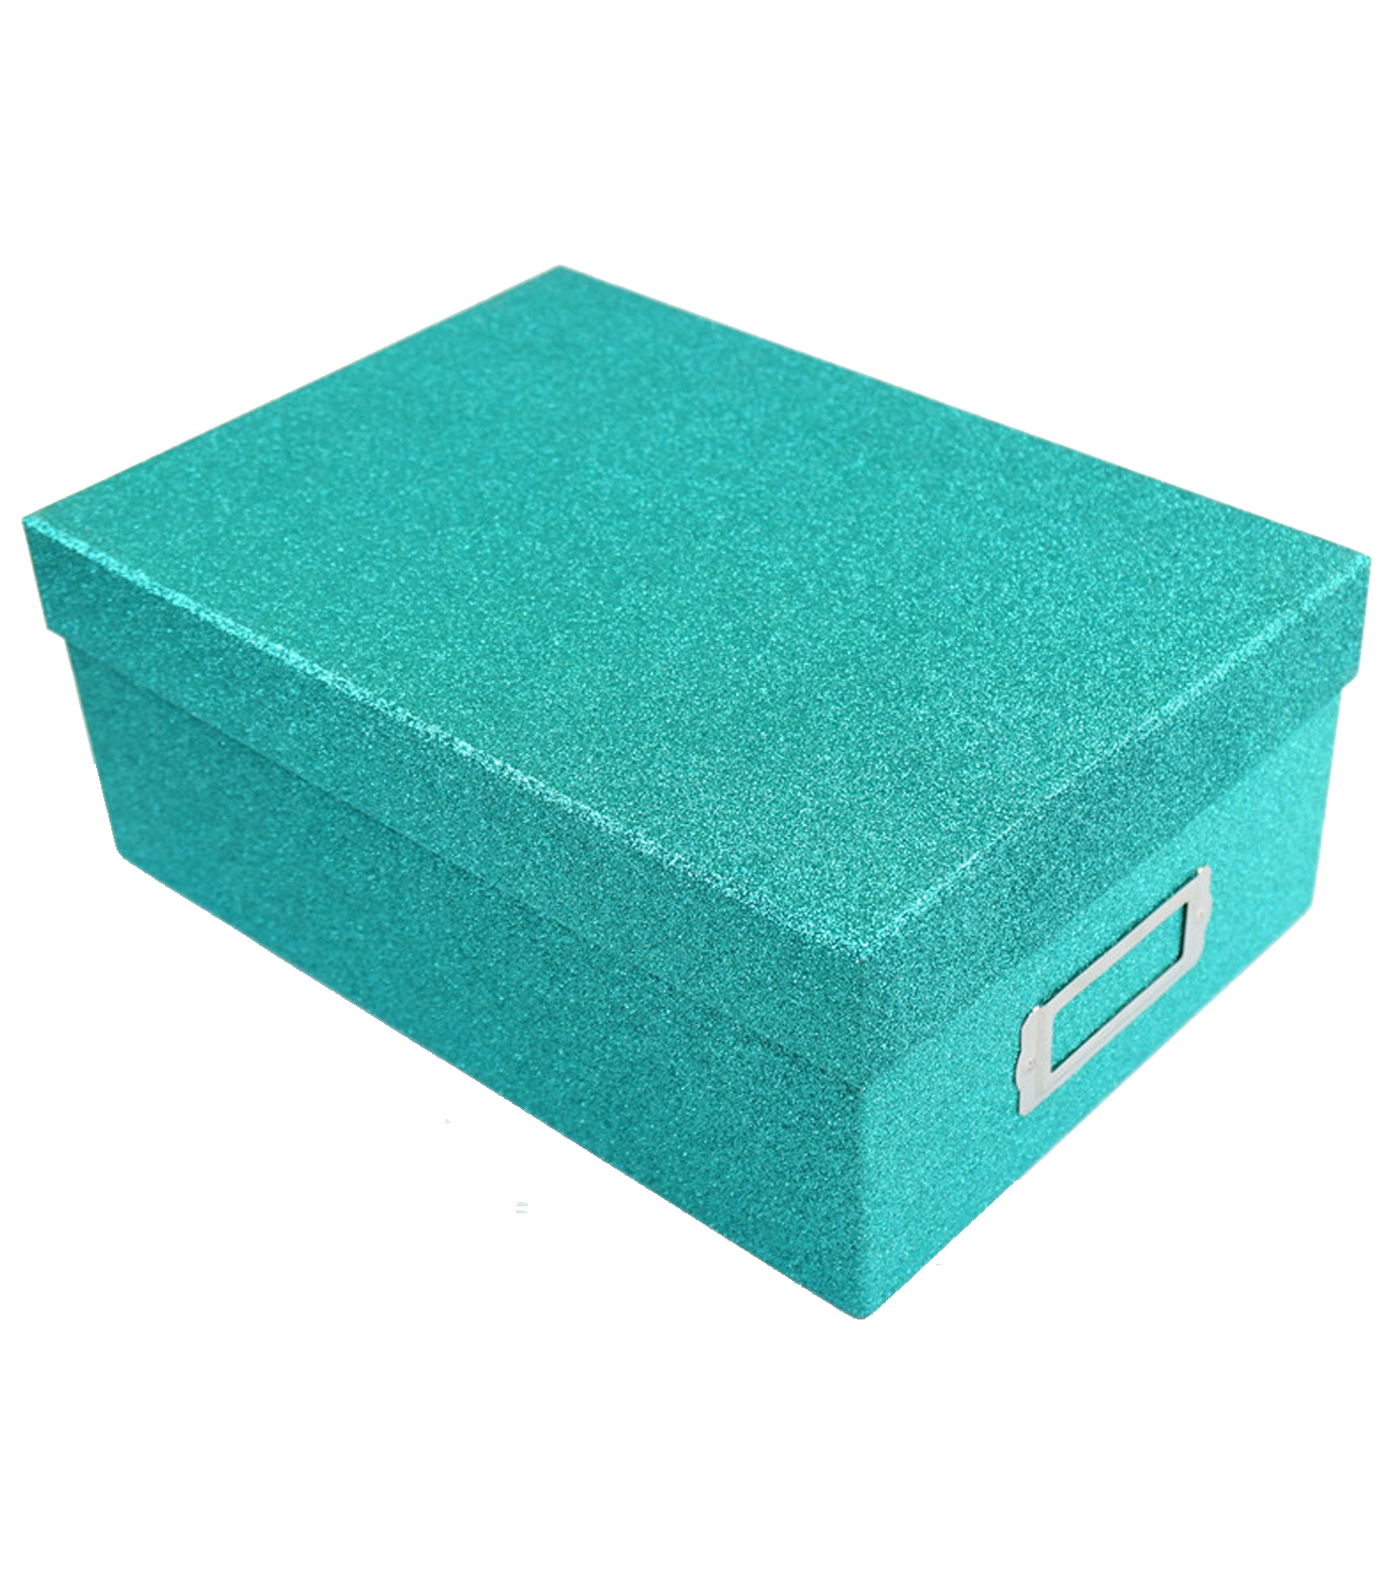 Superieur Teal Glitter Photo Storage Box